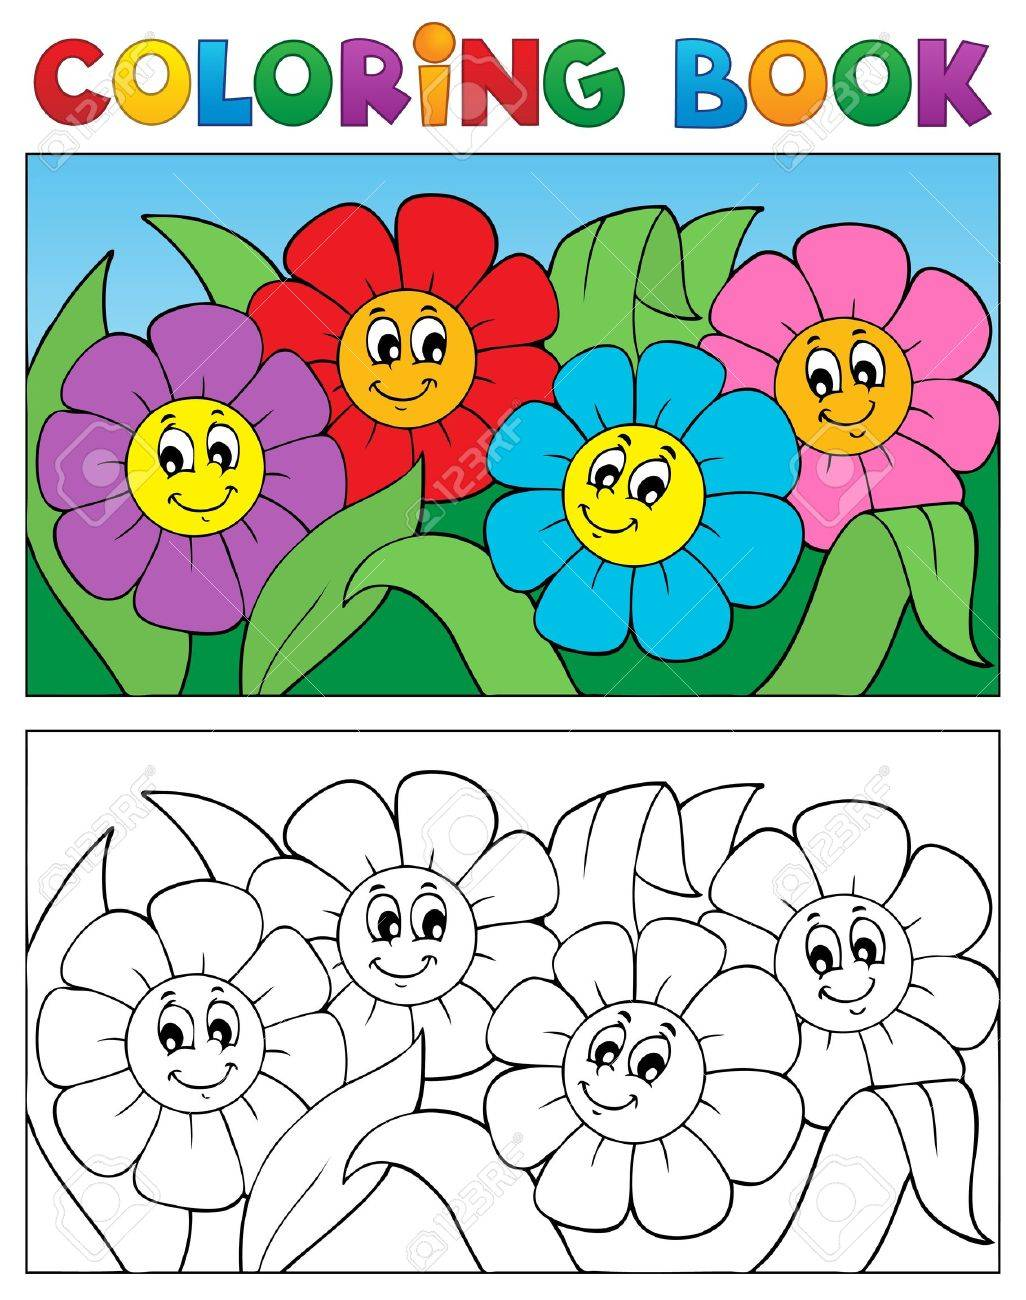 Coloring book with flower theme 1 - vector illustration Stock Vector - 17368326